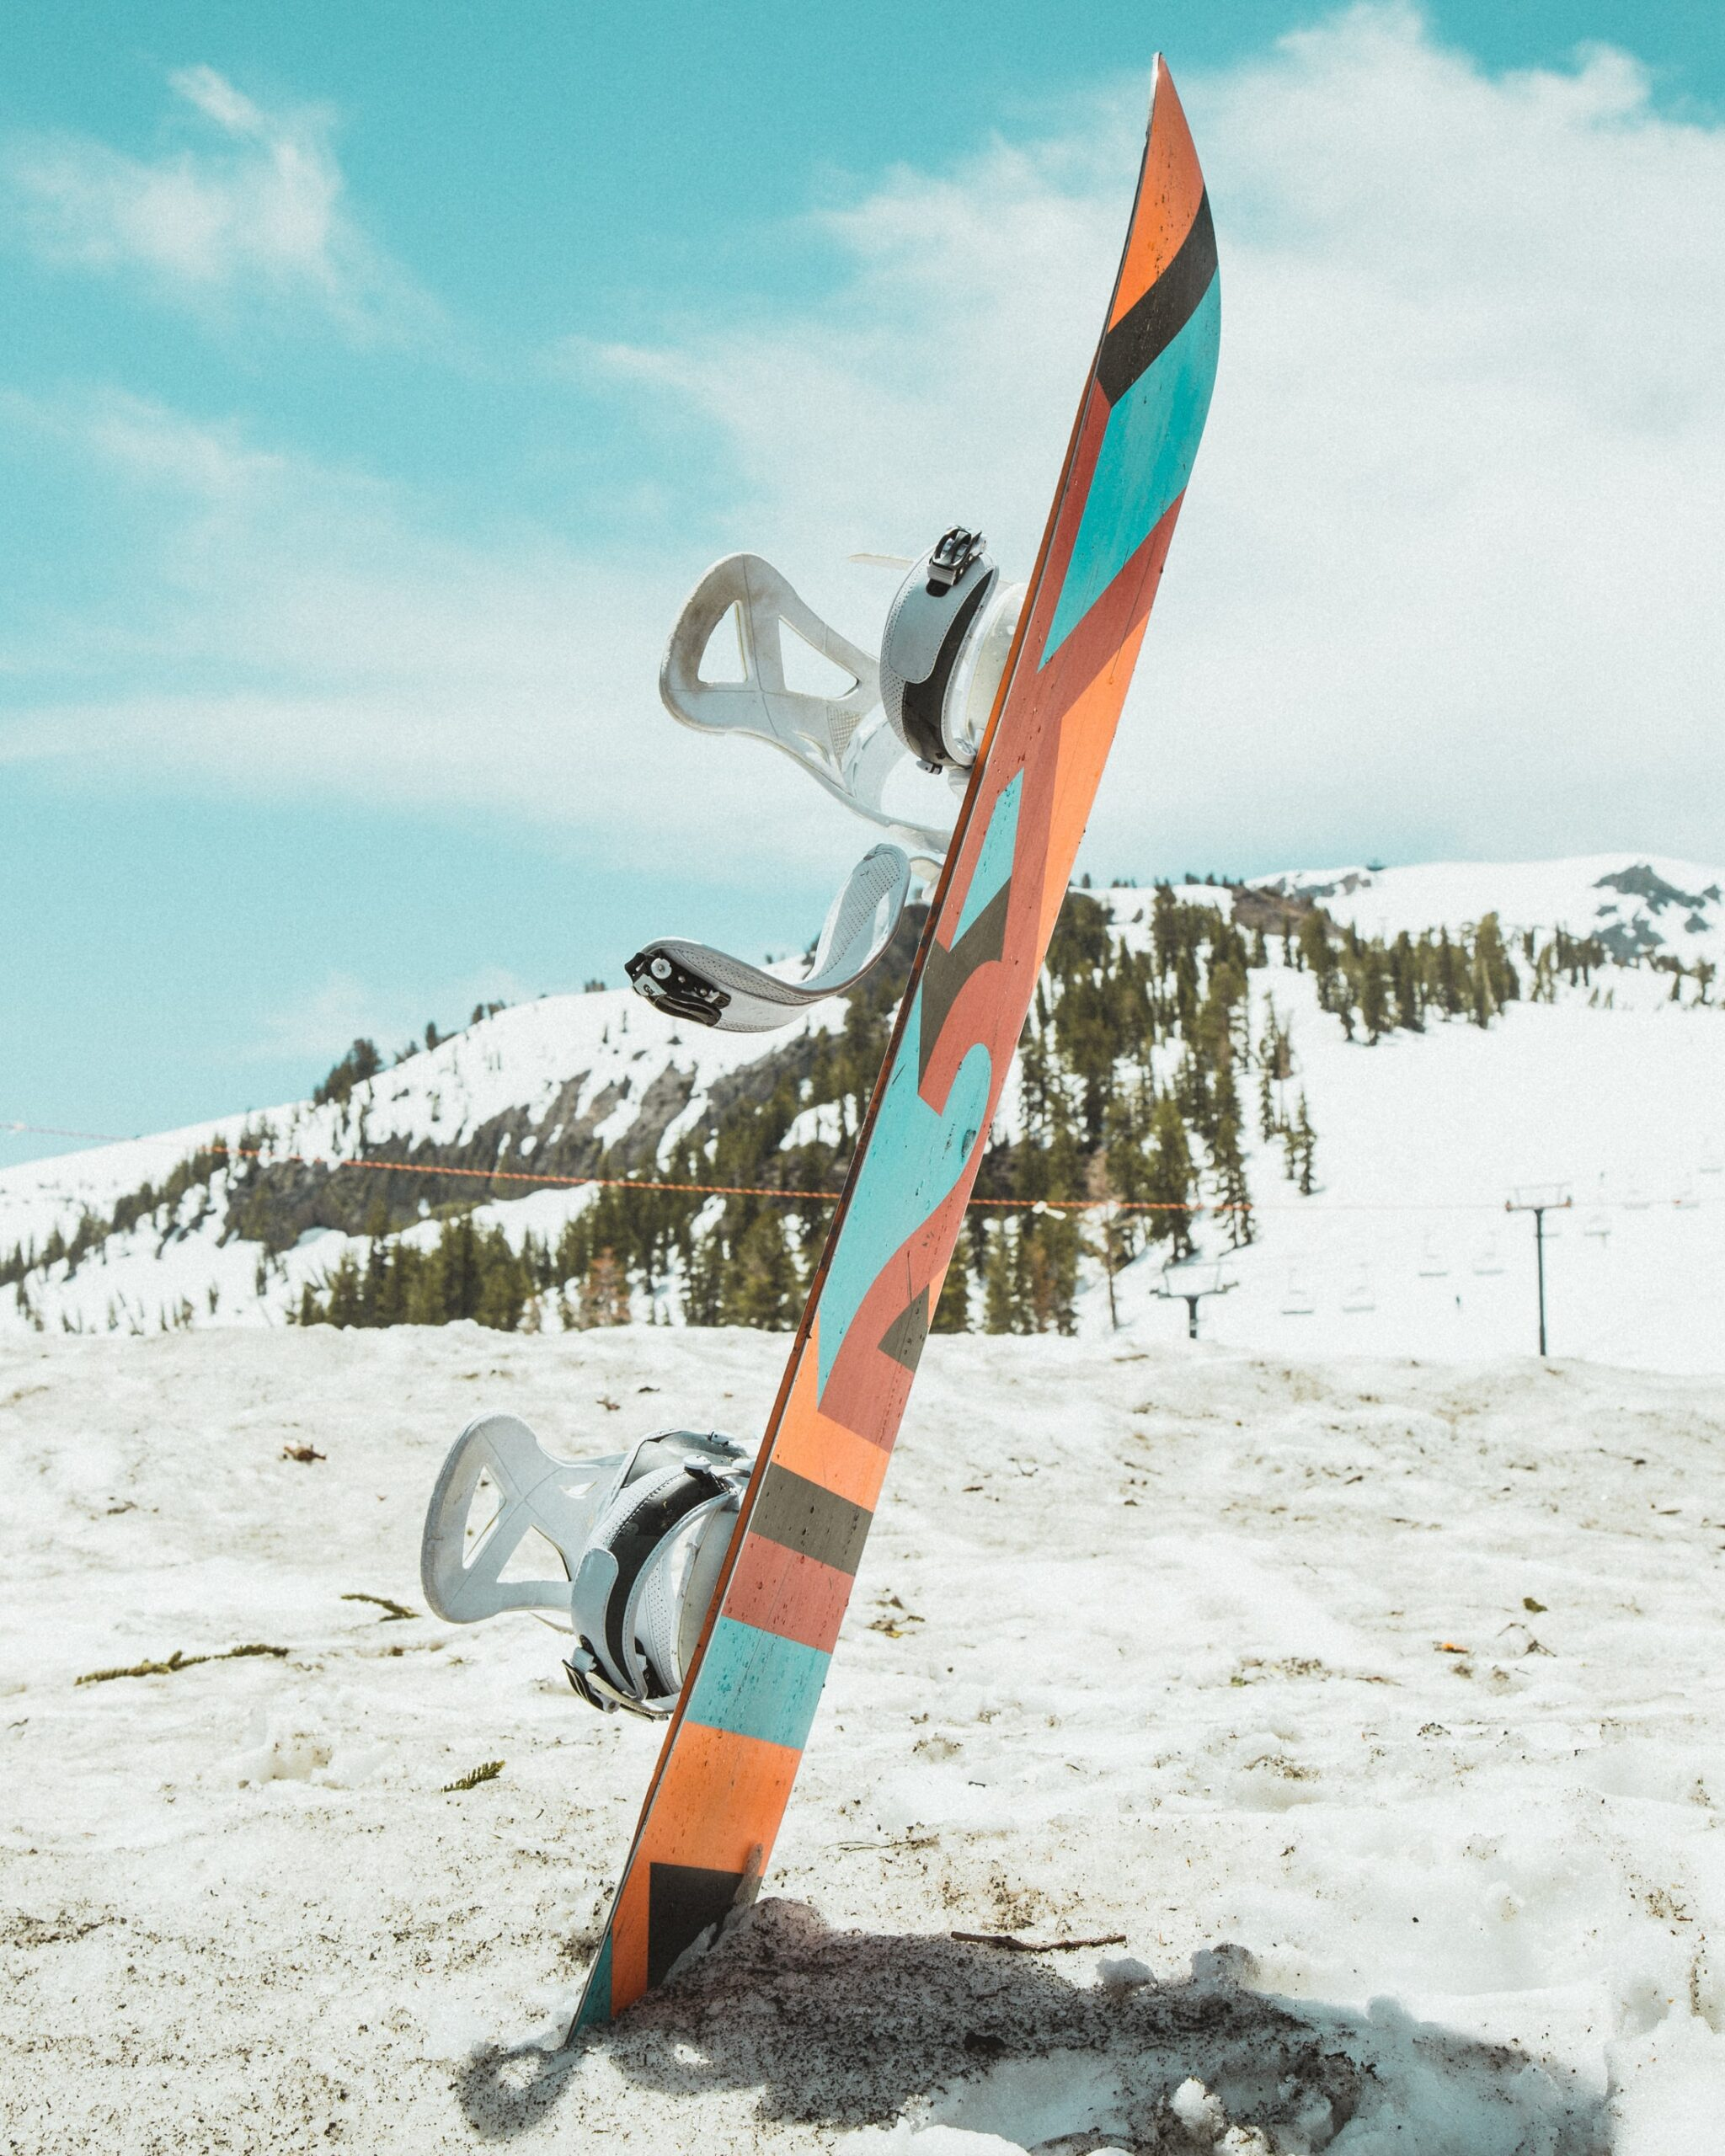 how often should you tune your snowboard